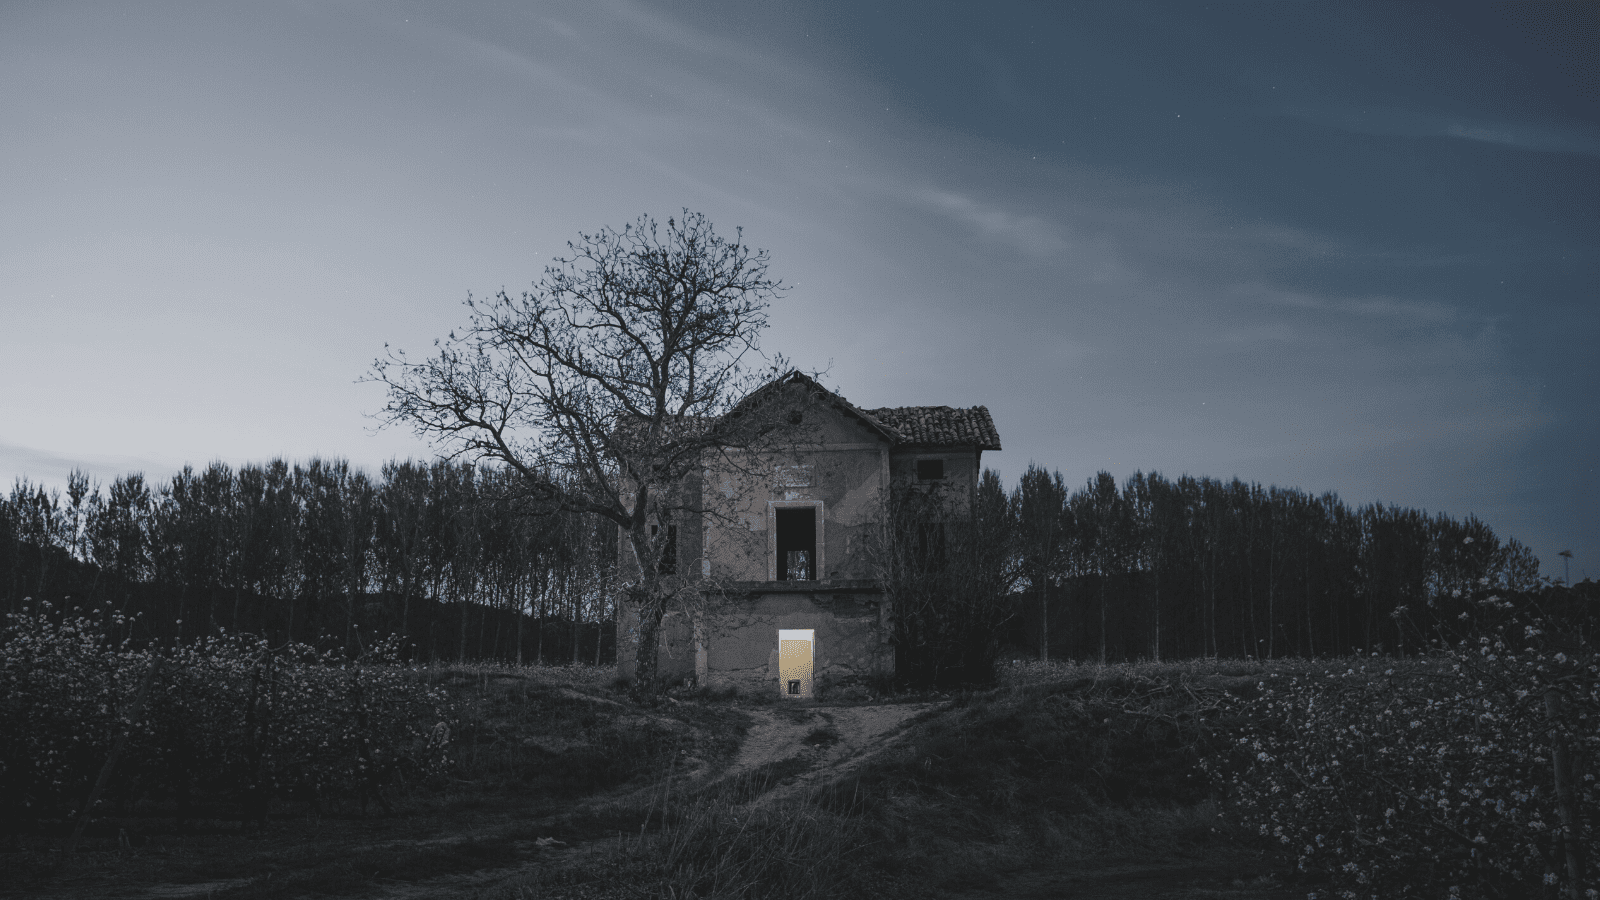 Spooky looking house in field with trees